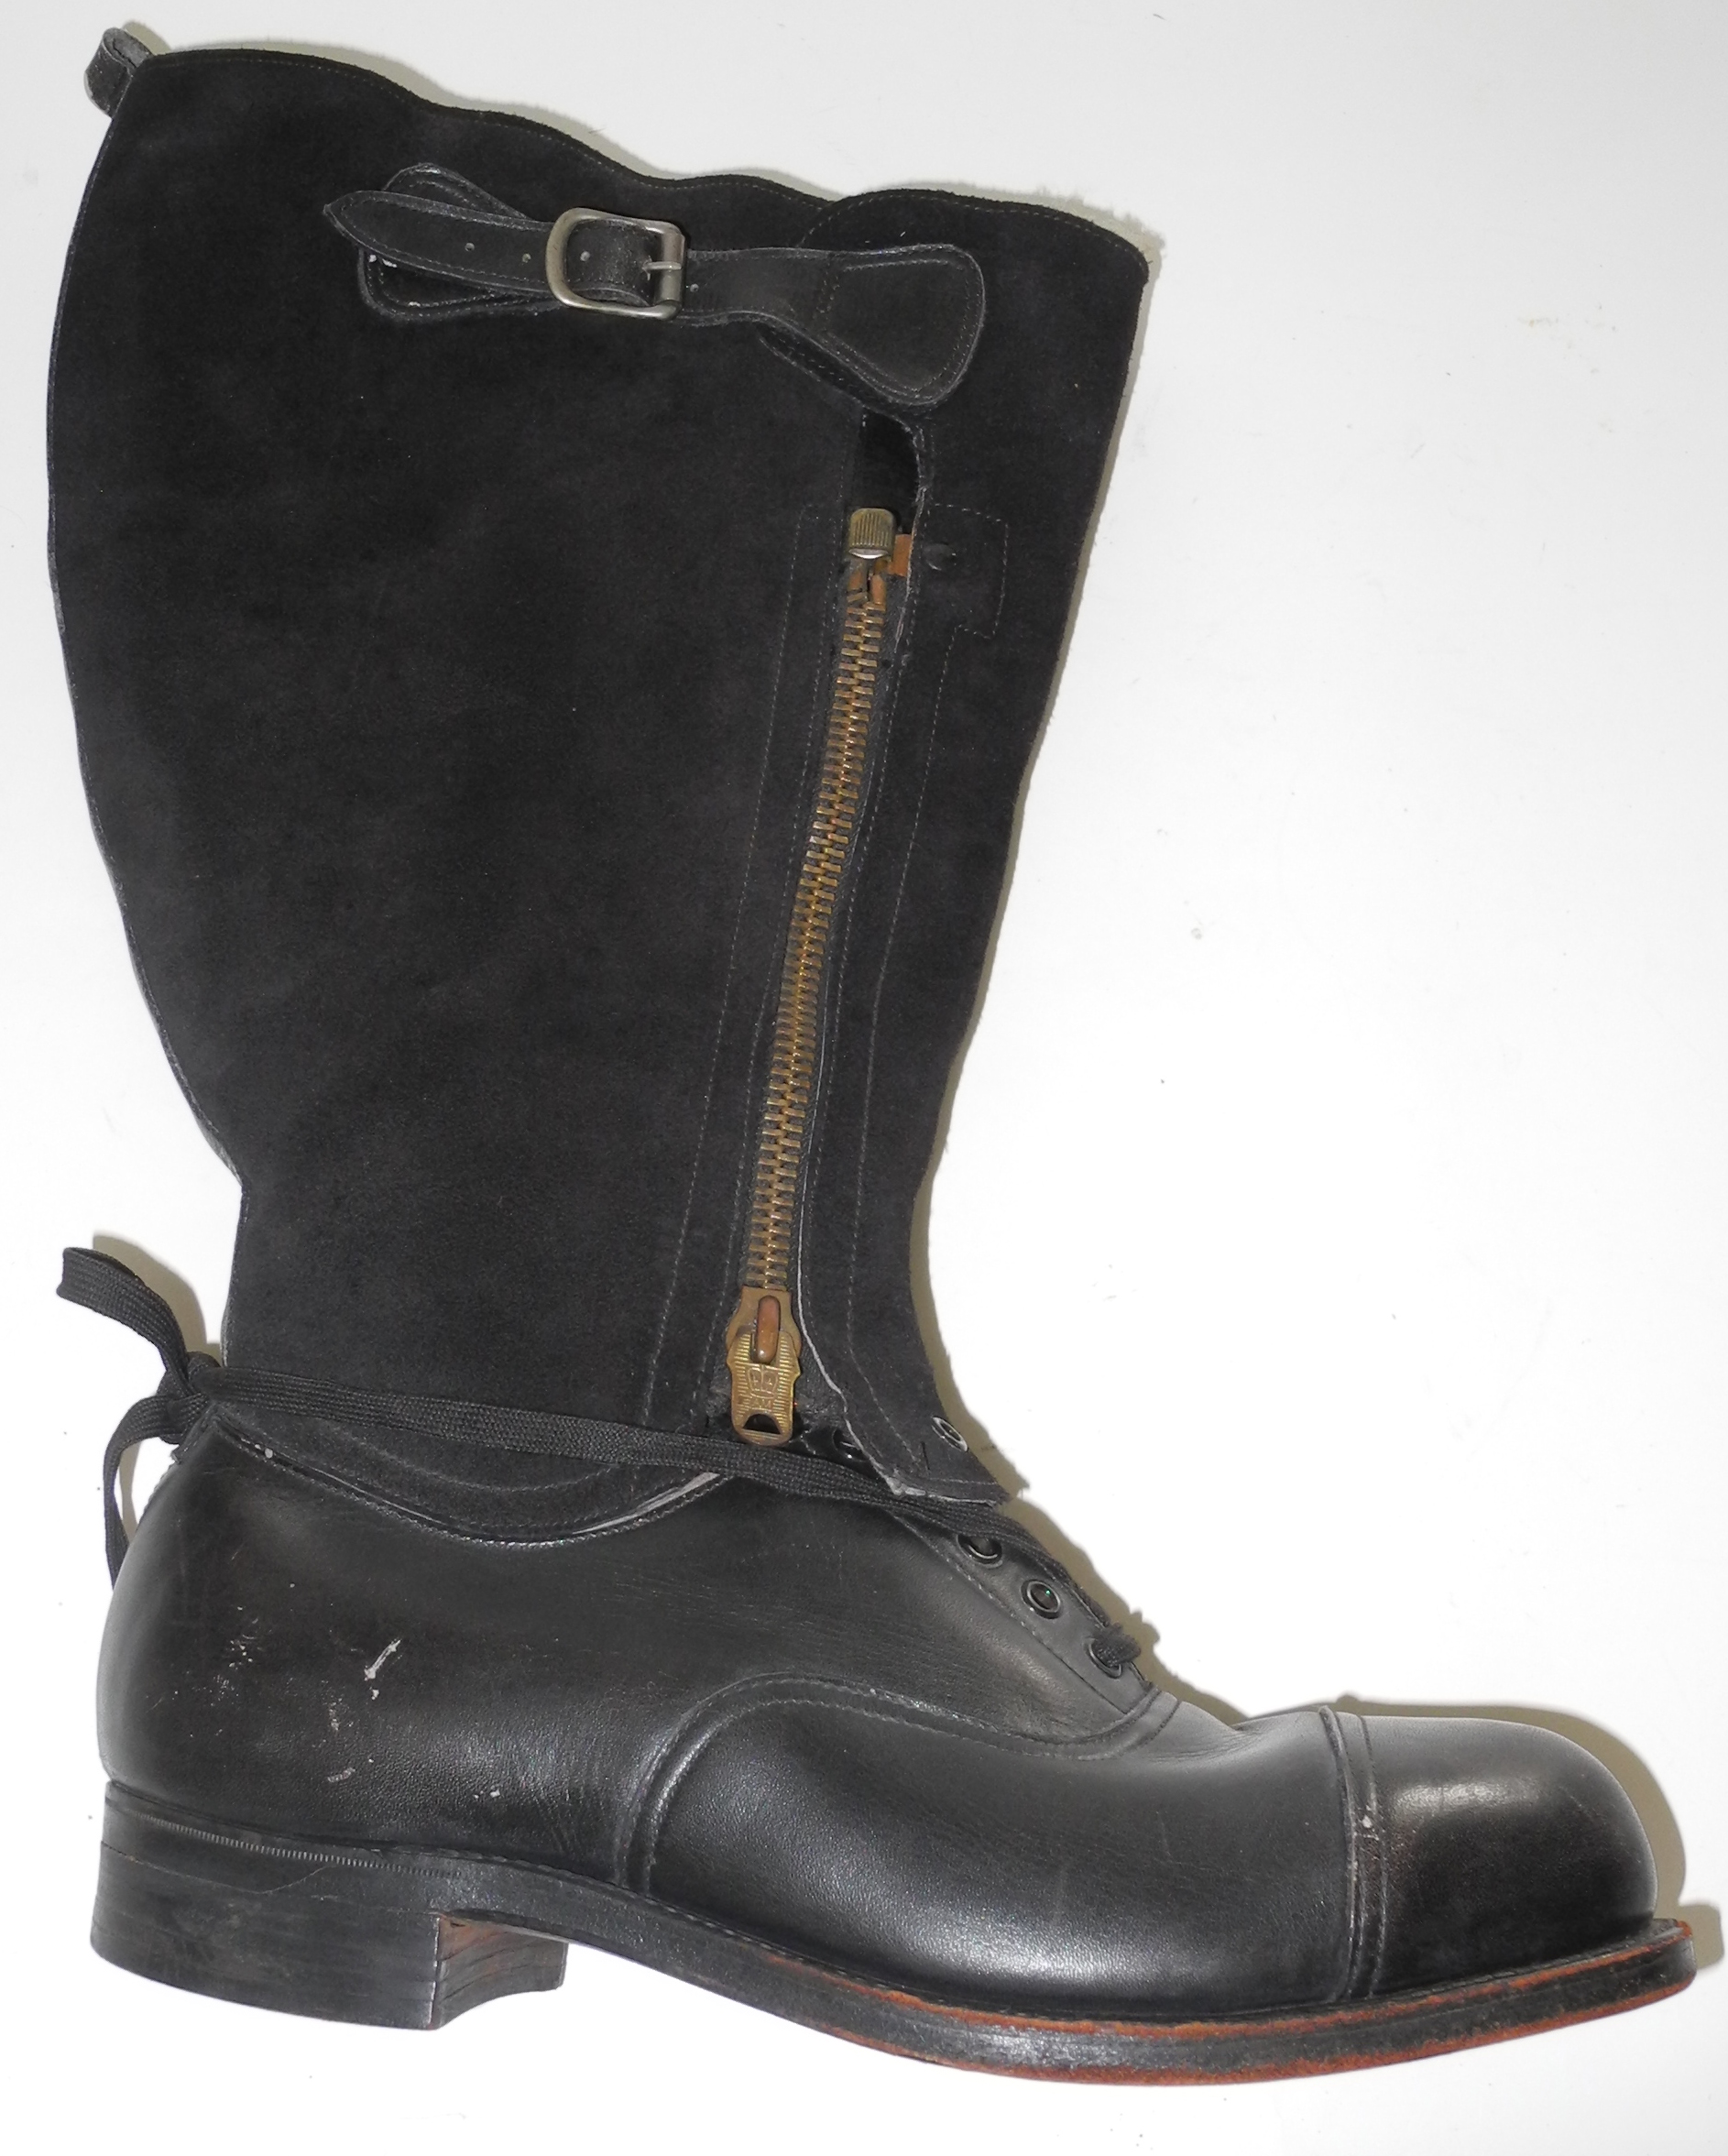 RAF 1943 pattern escape boots